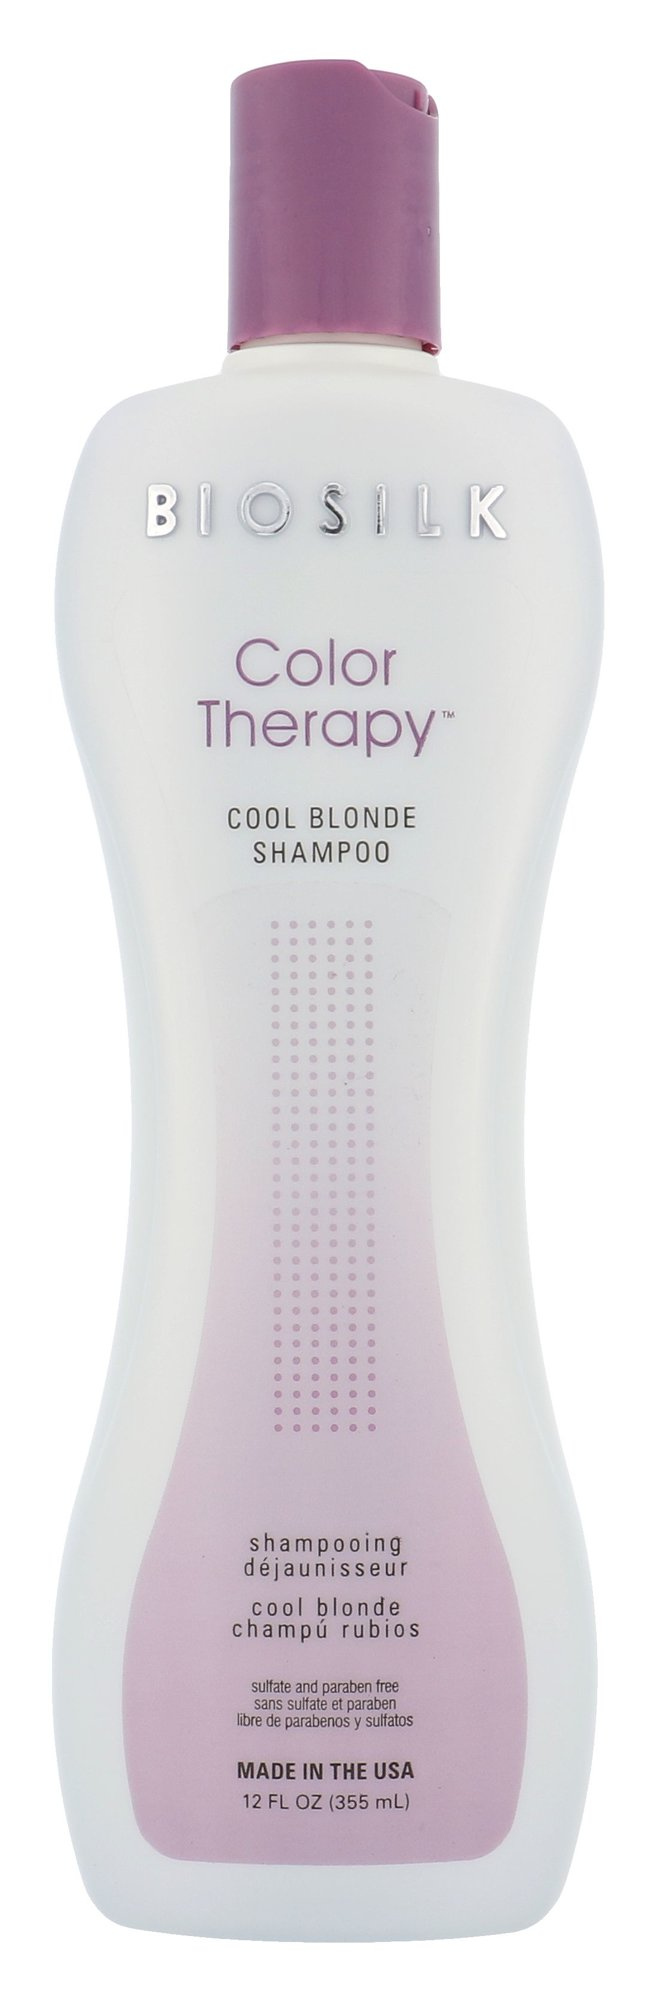 Farouk Systems Biosilk Color Therapy Cool Blonde Shampoo Cosmetic 355ml